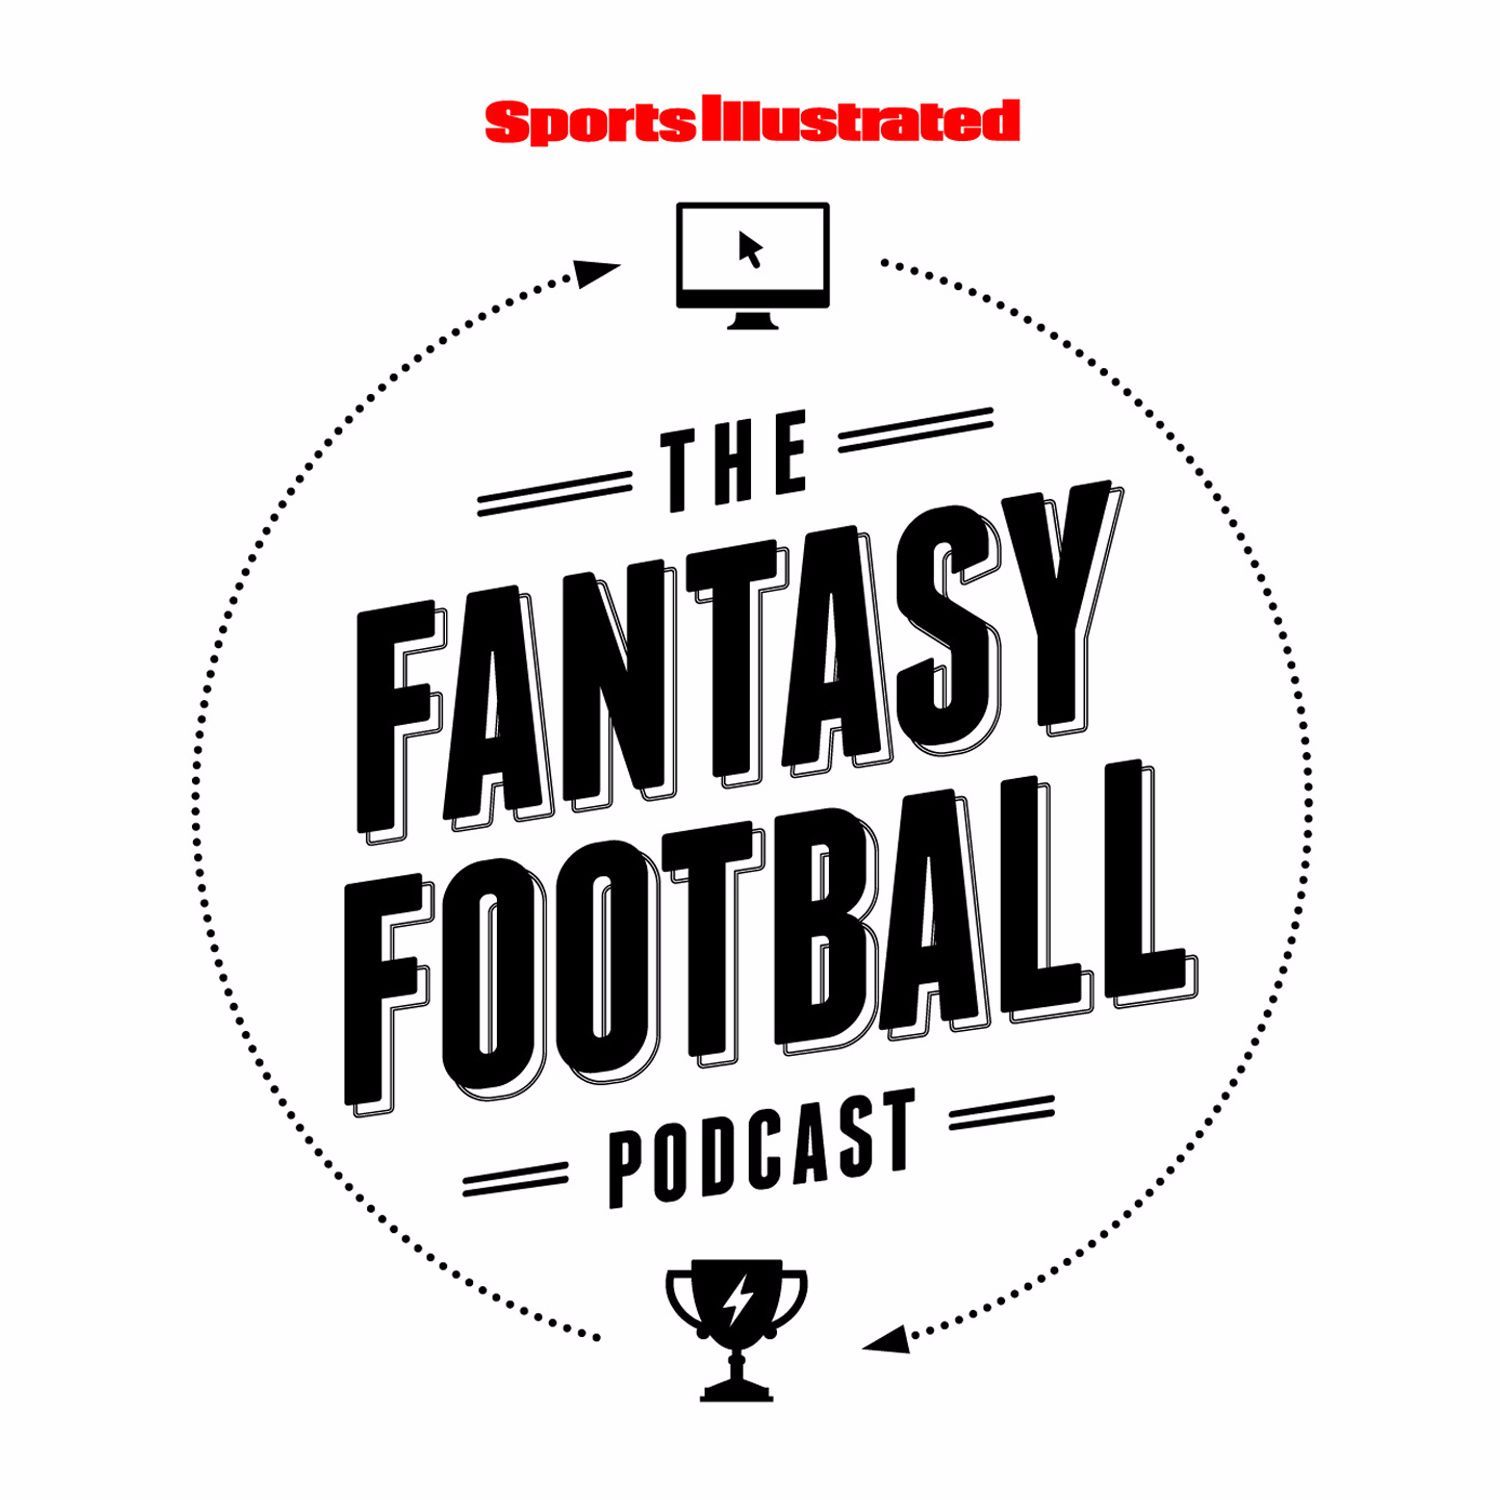 podcast fftoolbox fantasy football radio